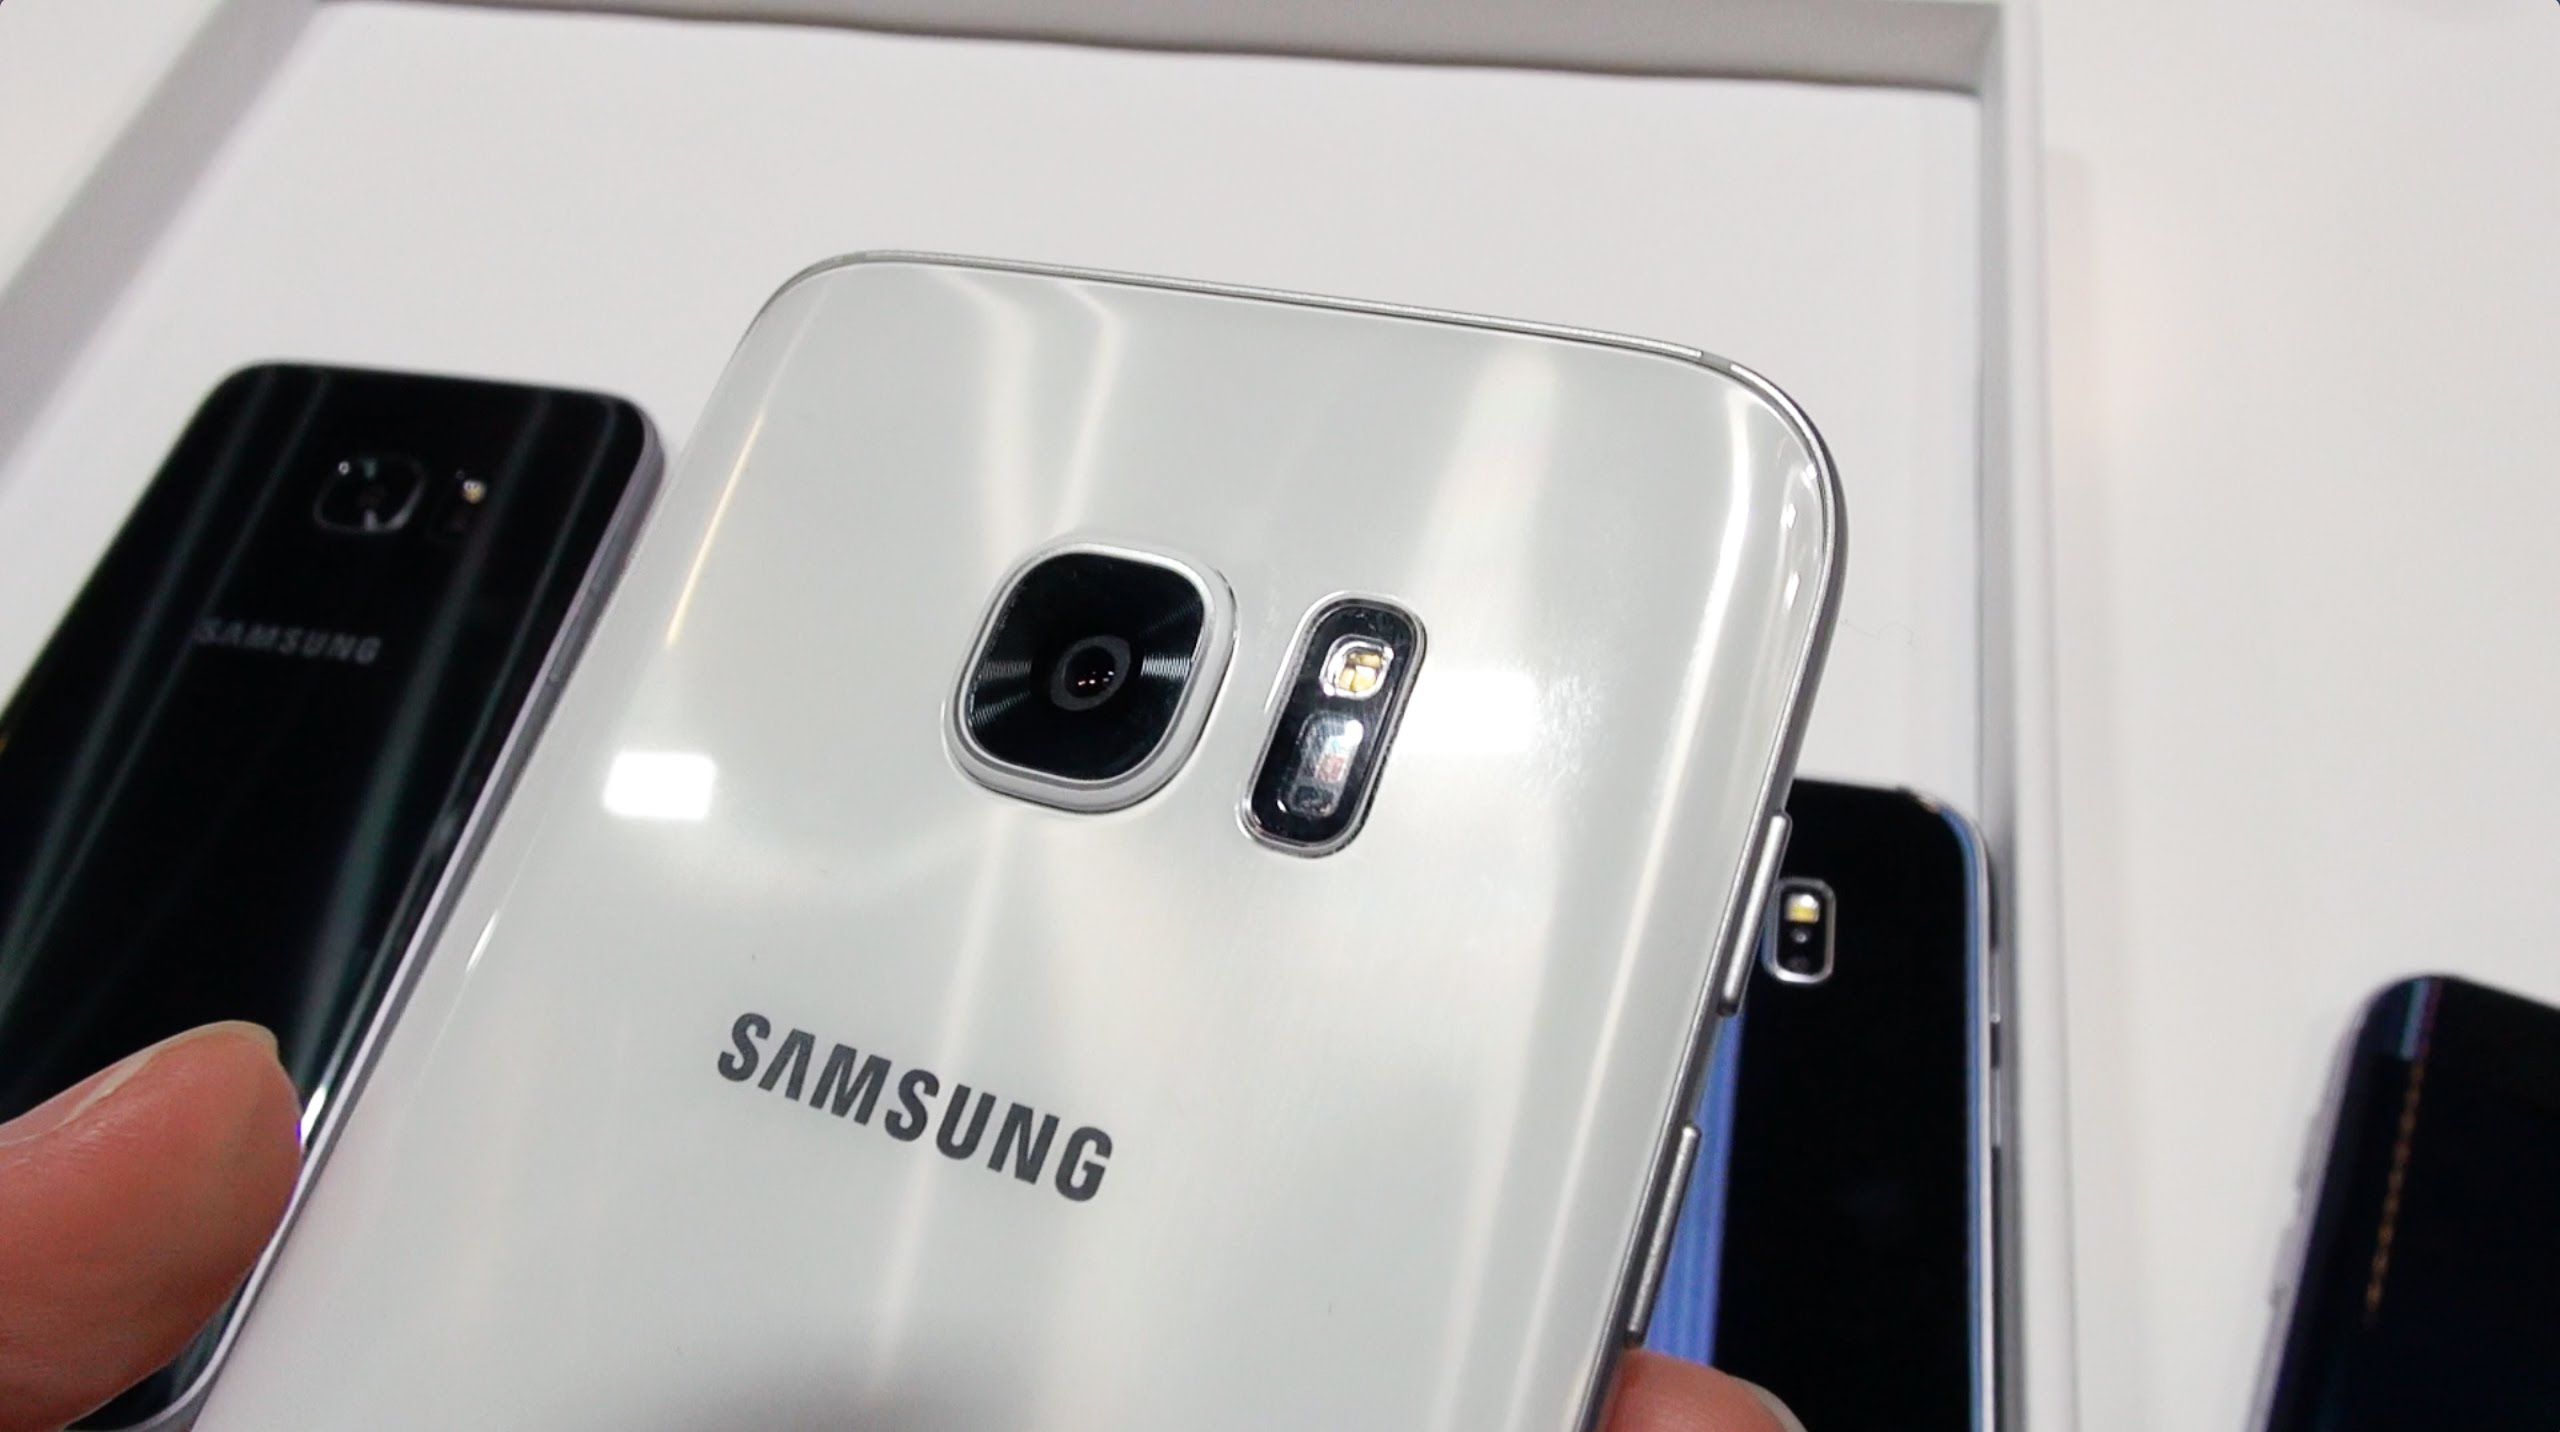 Samsung Galaxy S7 & S7 Edge: In-Depth Hands On / Walkthrough